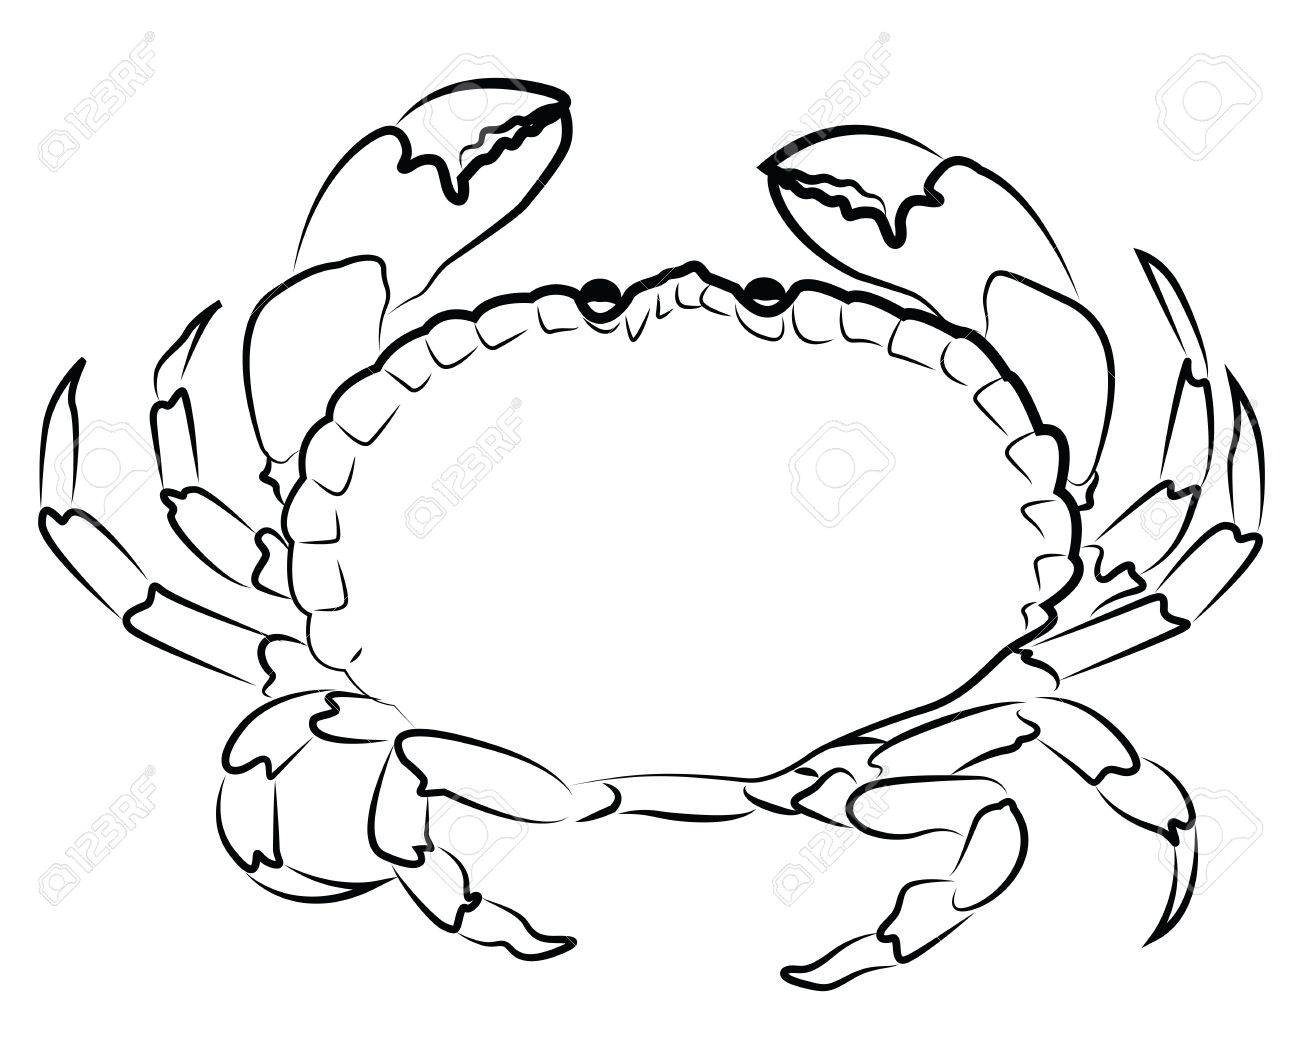 Crab silhouette isolated on white Stock Vector - 20085699